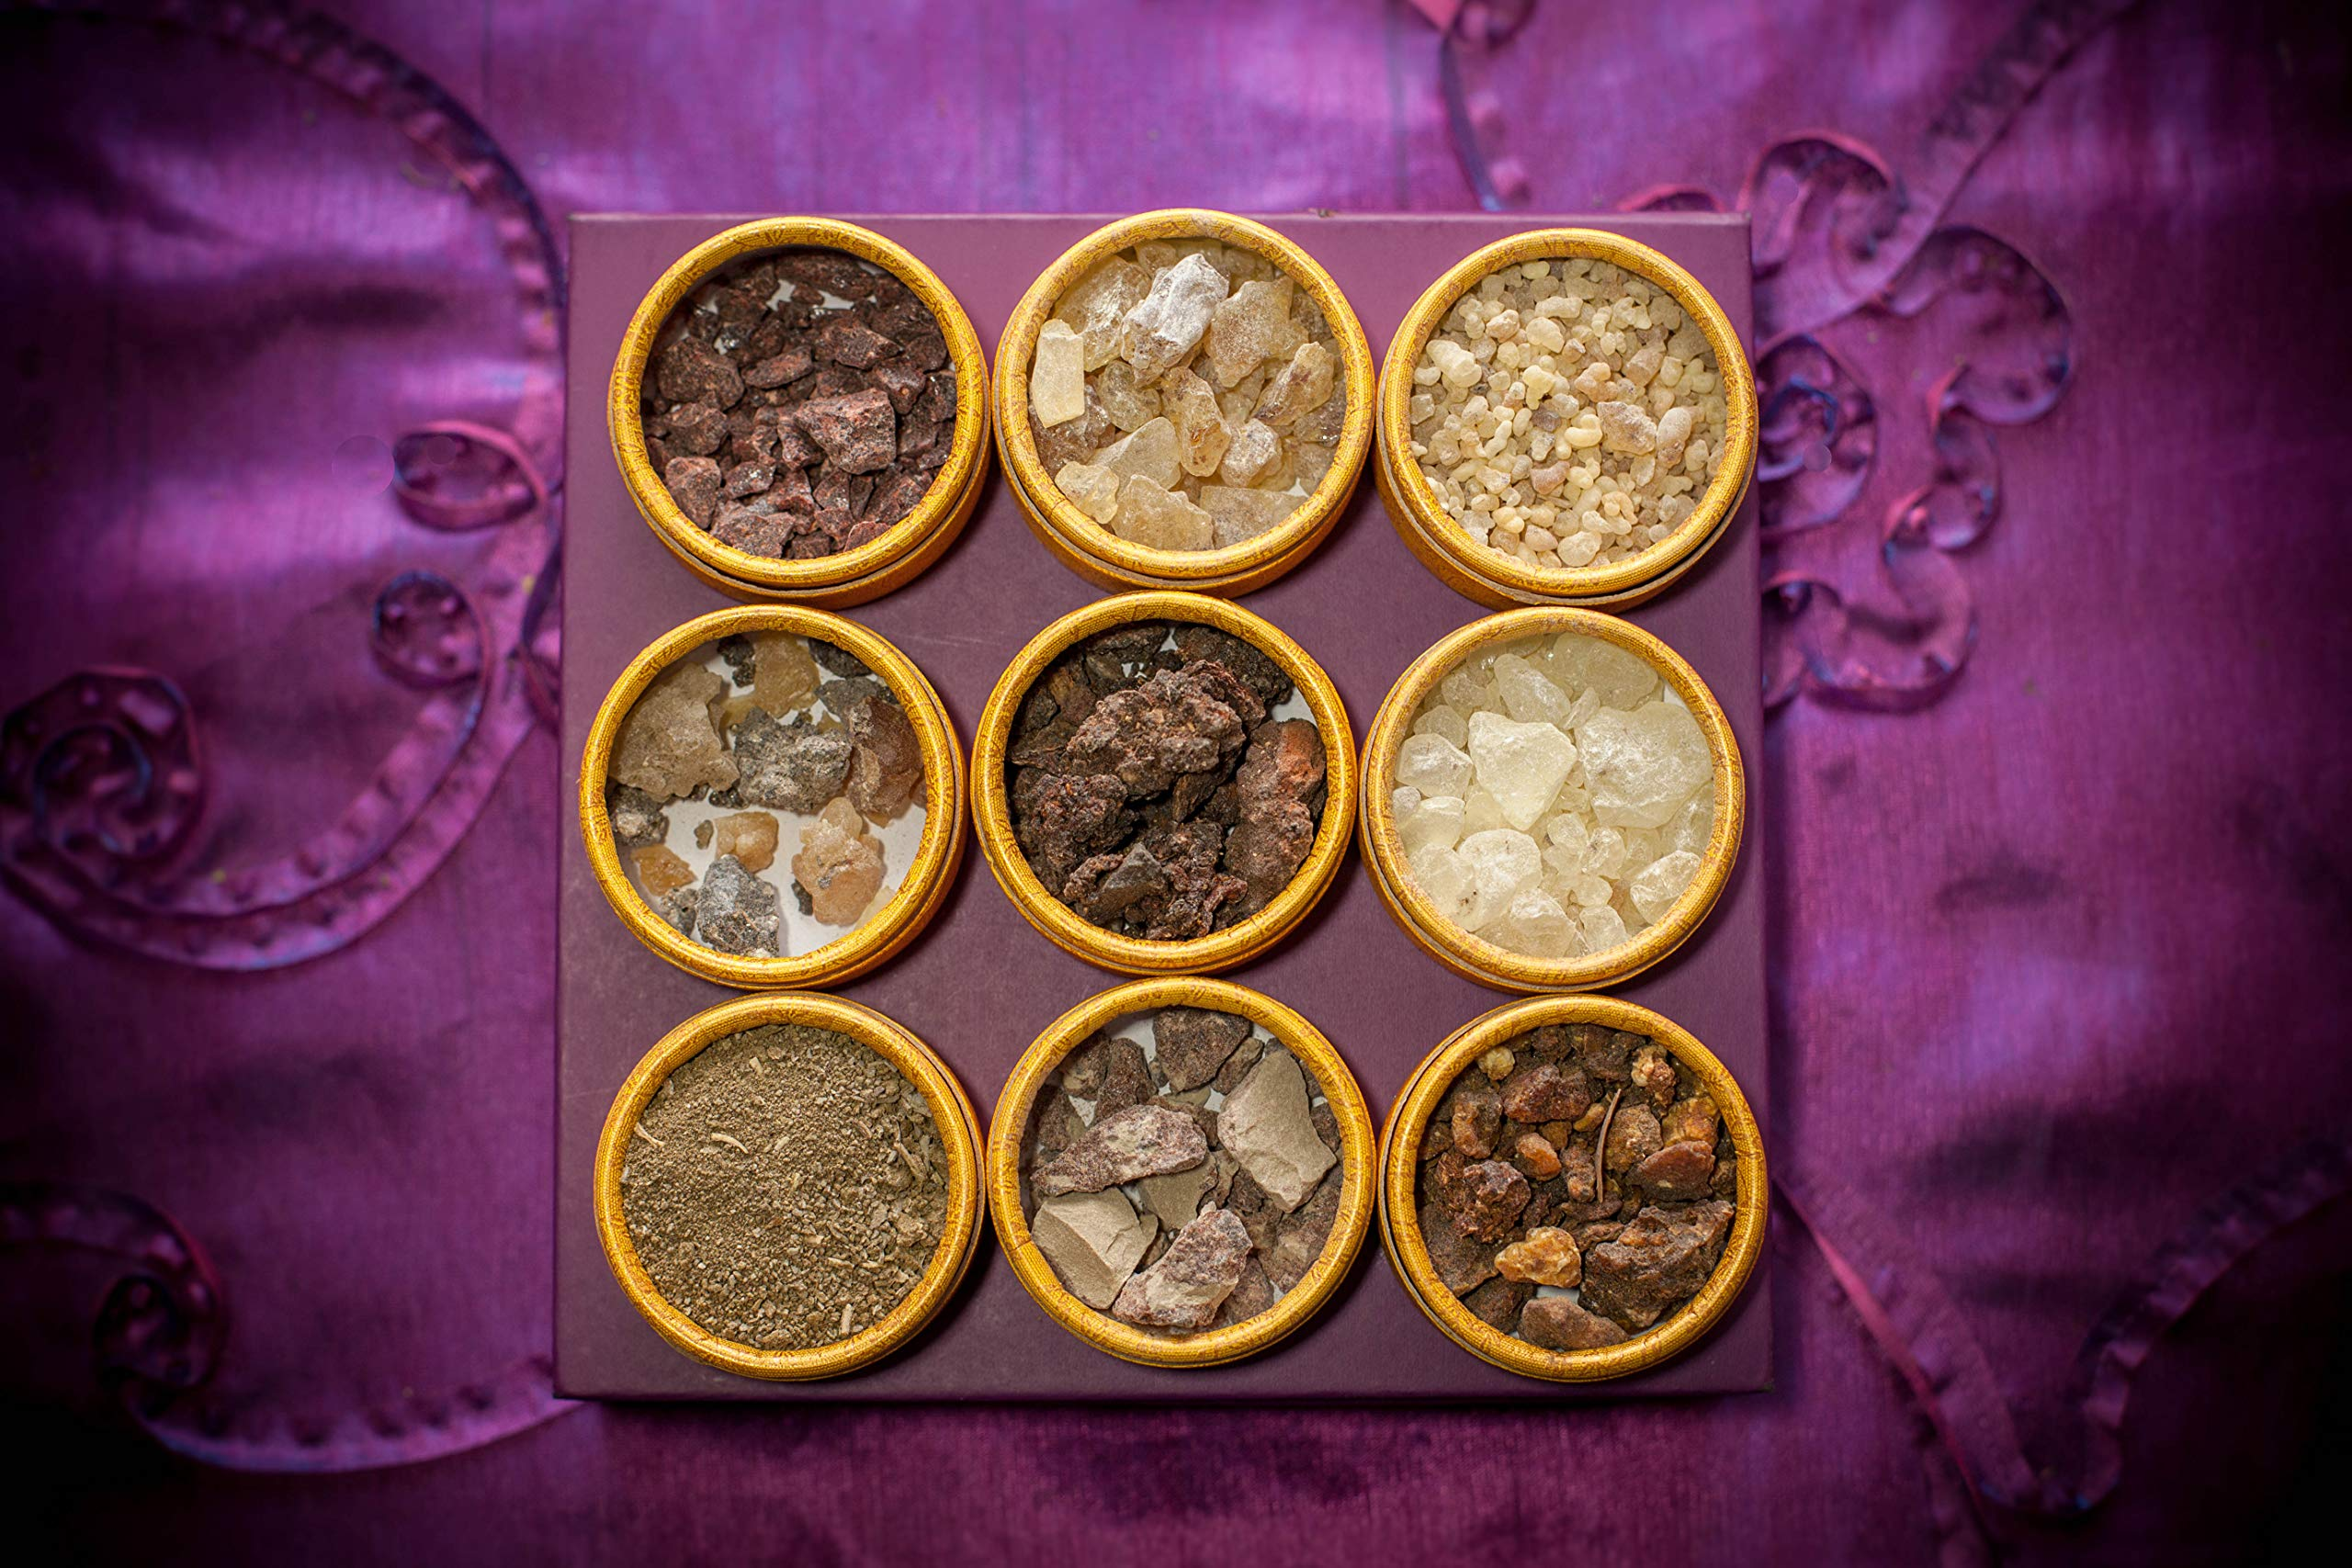 sacred scents for you Resin Incense Variety Sampler Pack/Gift Set,1/2 oz Frankincense-Myrrh-Sweet Myrrh-Copal-White Copal-Benzoin-1/4 oz Dragon's Blood, Palo Santo-1/4 oz Ground White Sage from by sacred scents for you (Image #3)